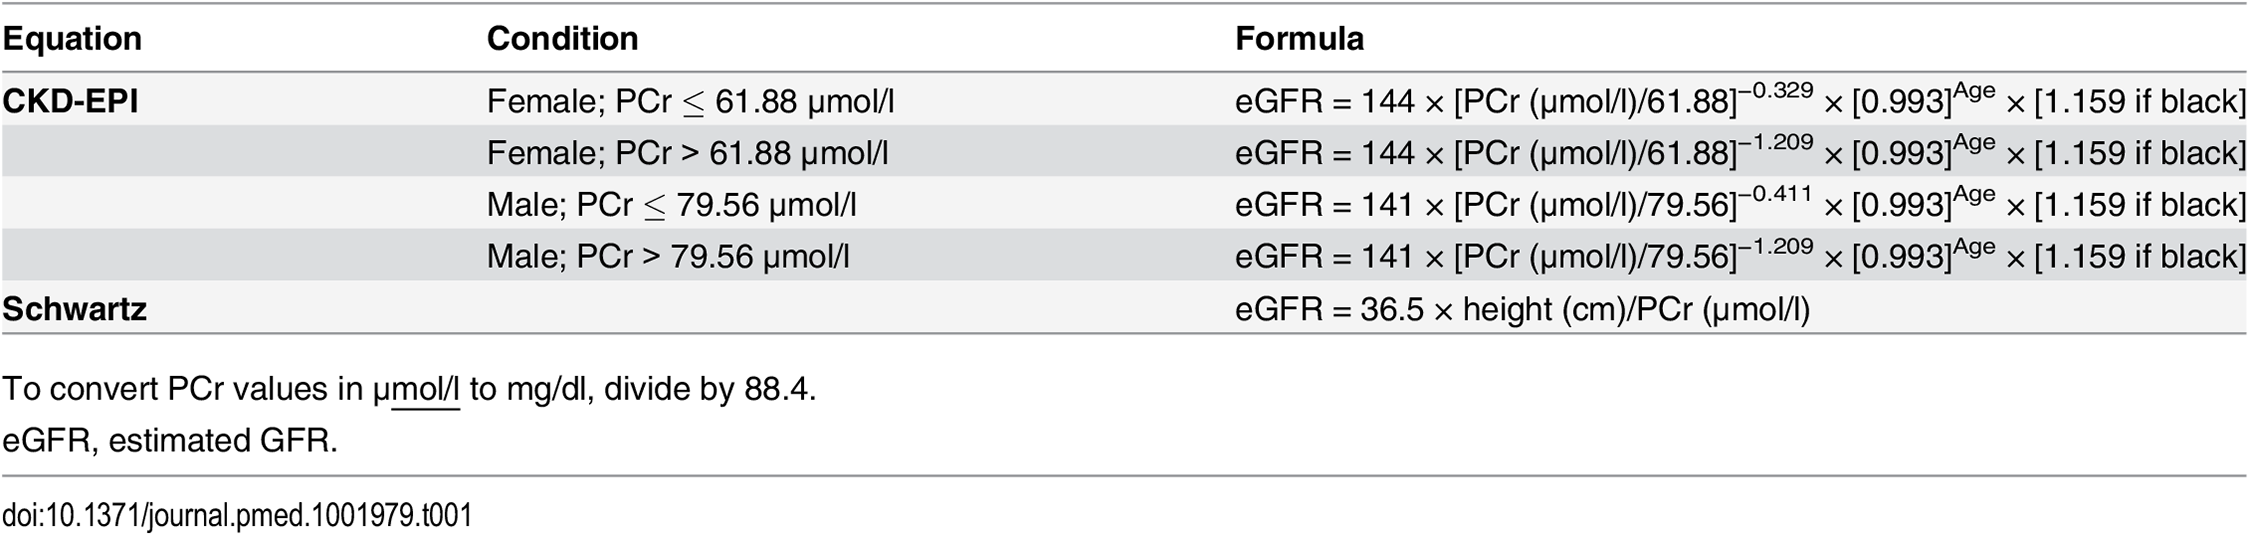 Formulas used for the estimation of glomerular filtration rate (ml/min/1.73 m<sup>2</sup>).